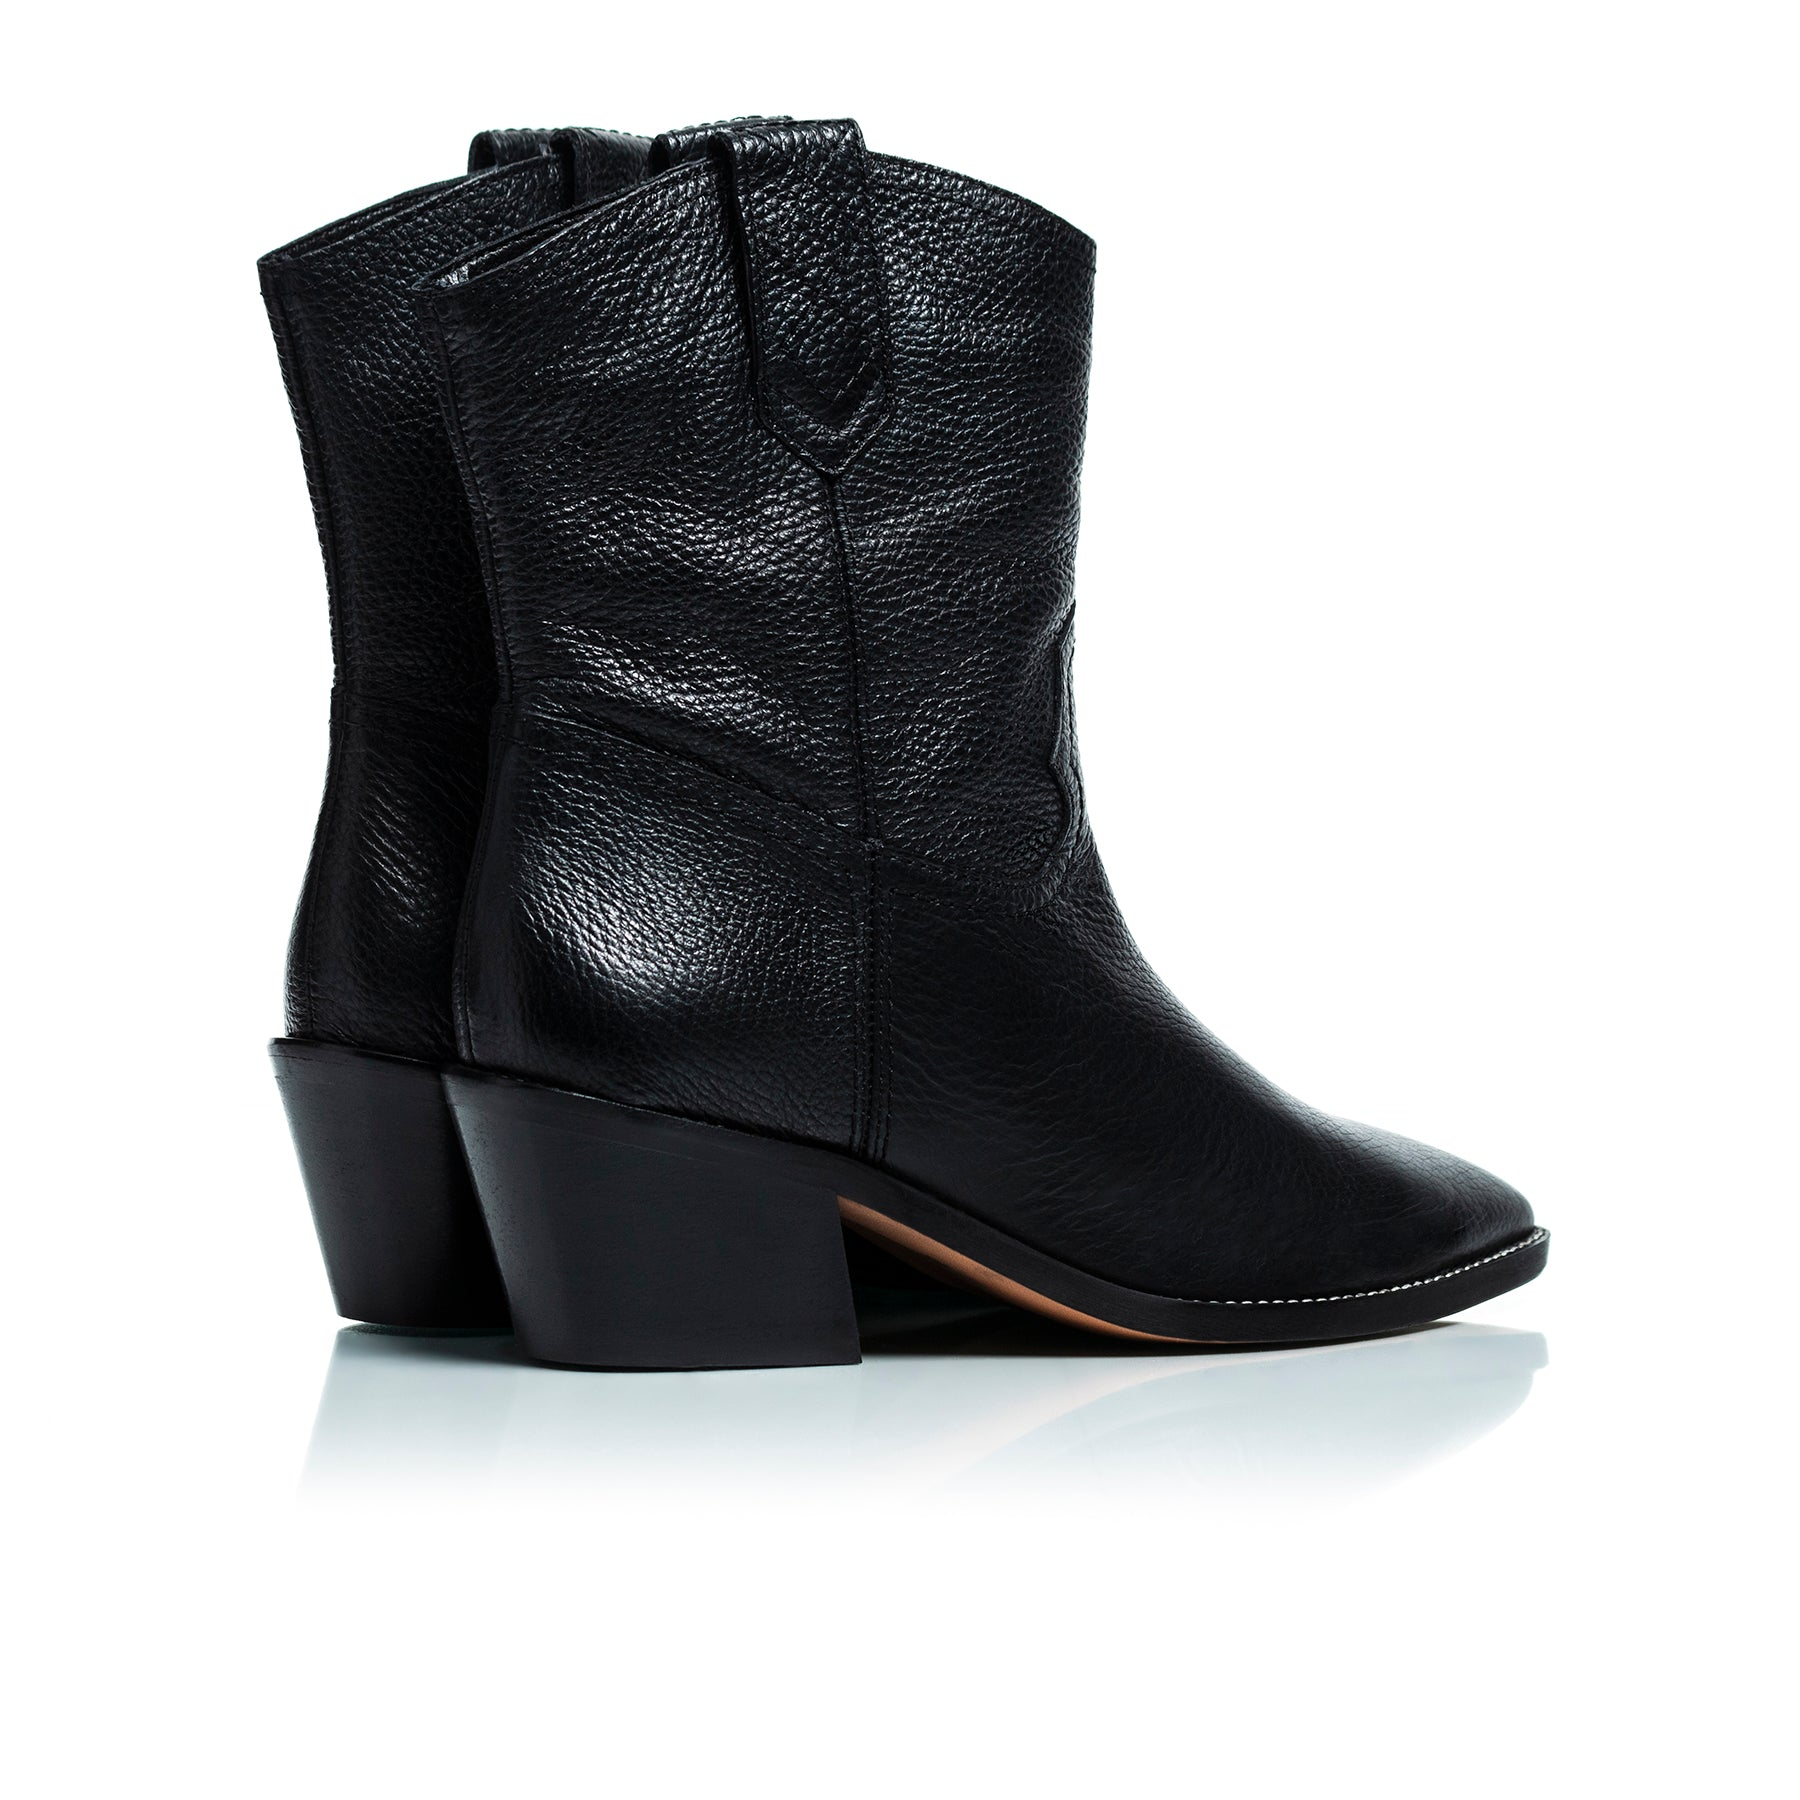 Texas Black Leather Ankle Boots